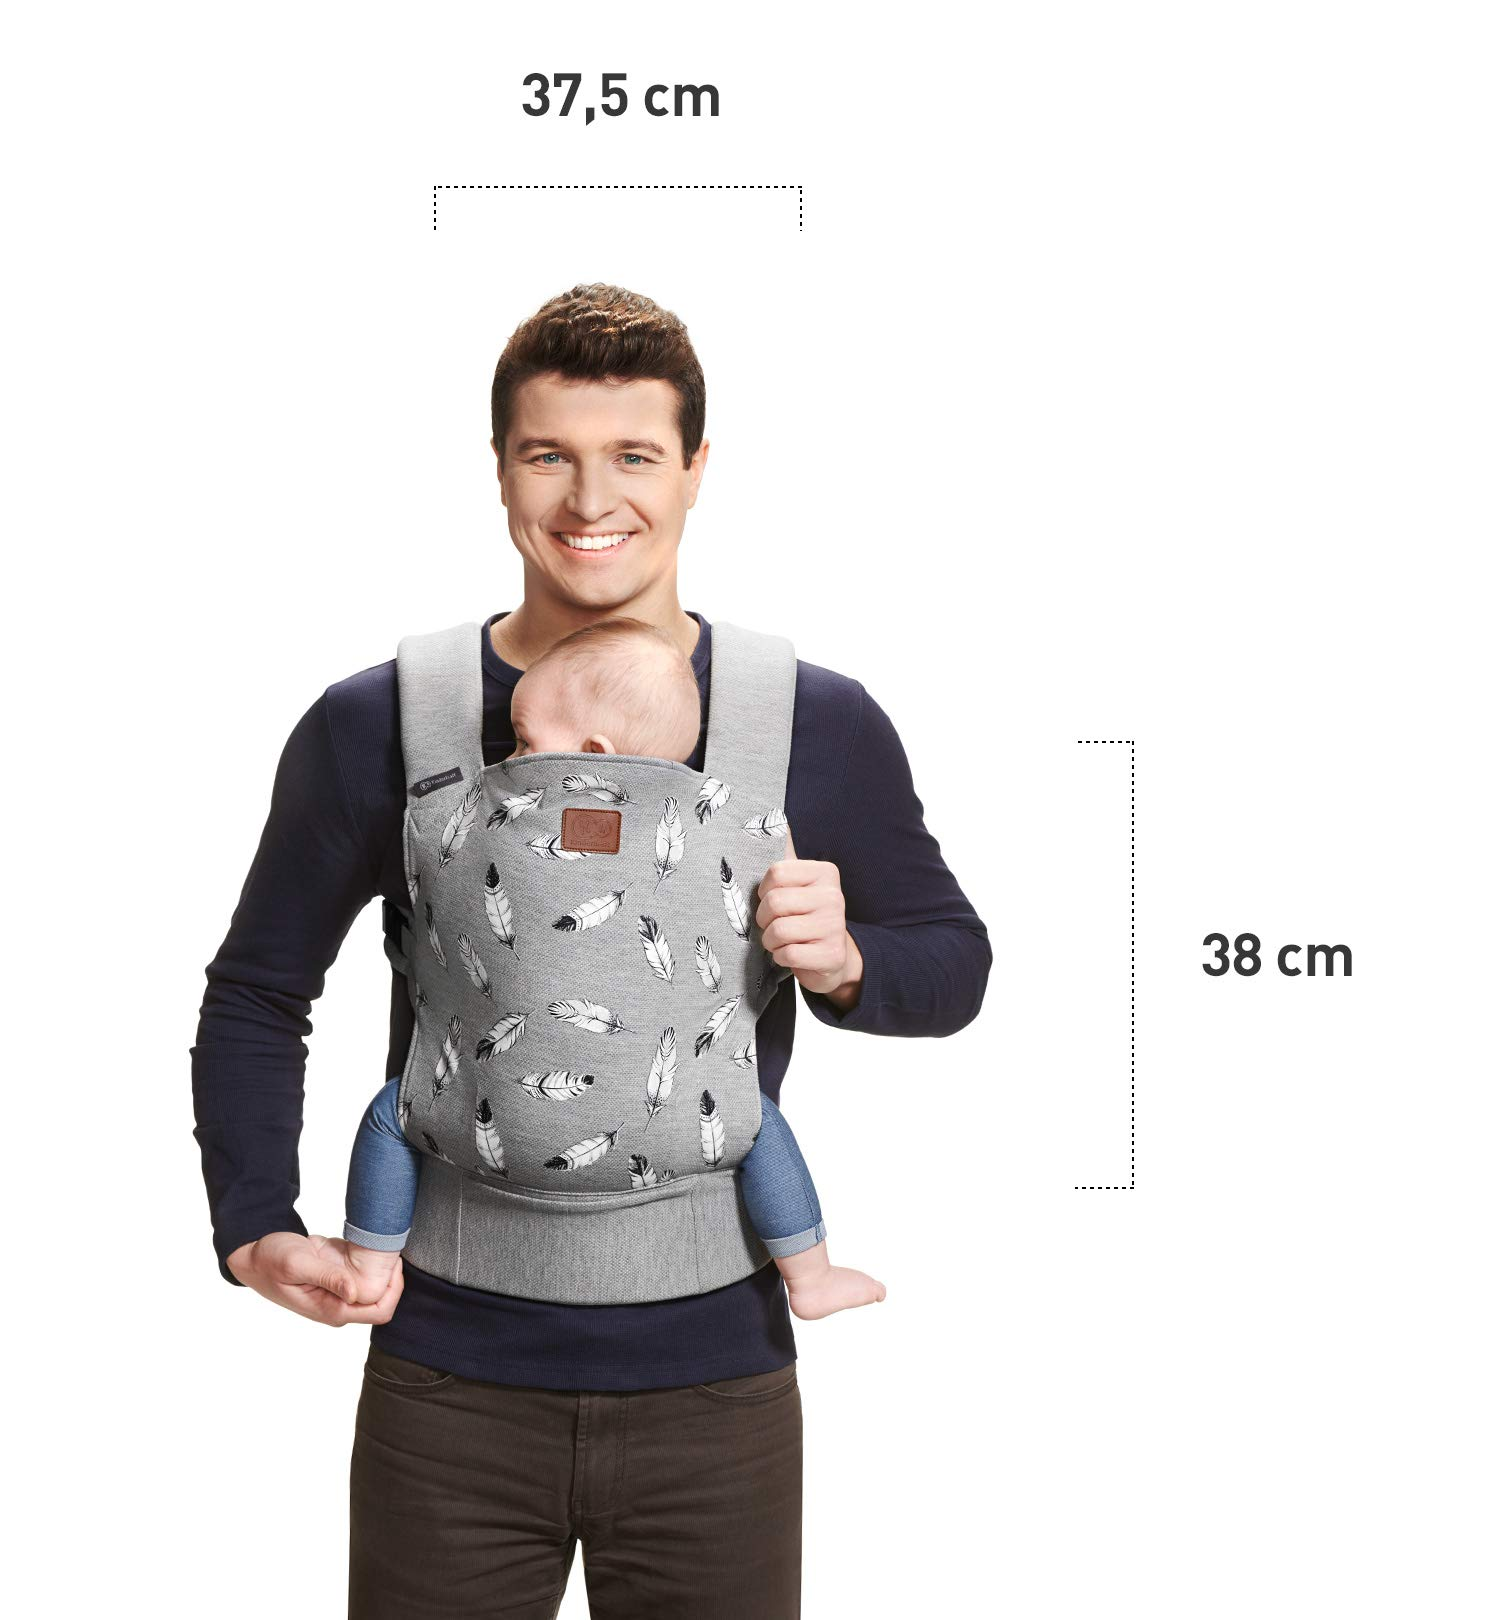 kk Kinderkraft Milo Ergonomic Baby Carrier Front Gray kk KinderKraft Ergonomic baby carrier for children aged from 3 months up to 20 kg Two baby carrying positions: on the stomach and on the back Rubber bands so that the belt ends do not hang 7